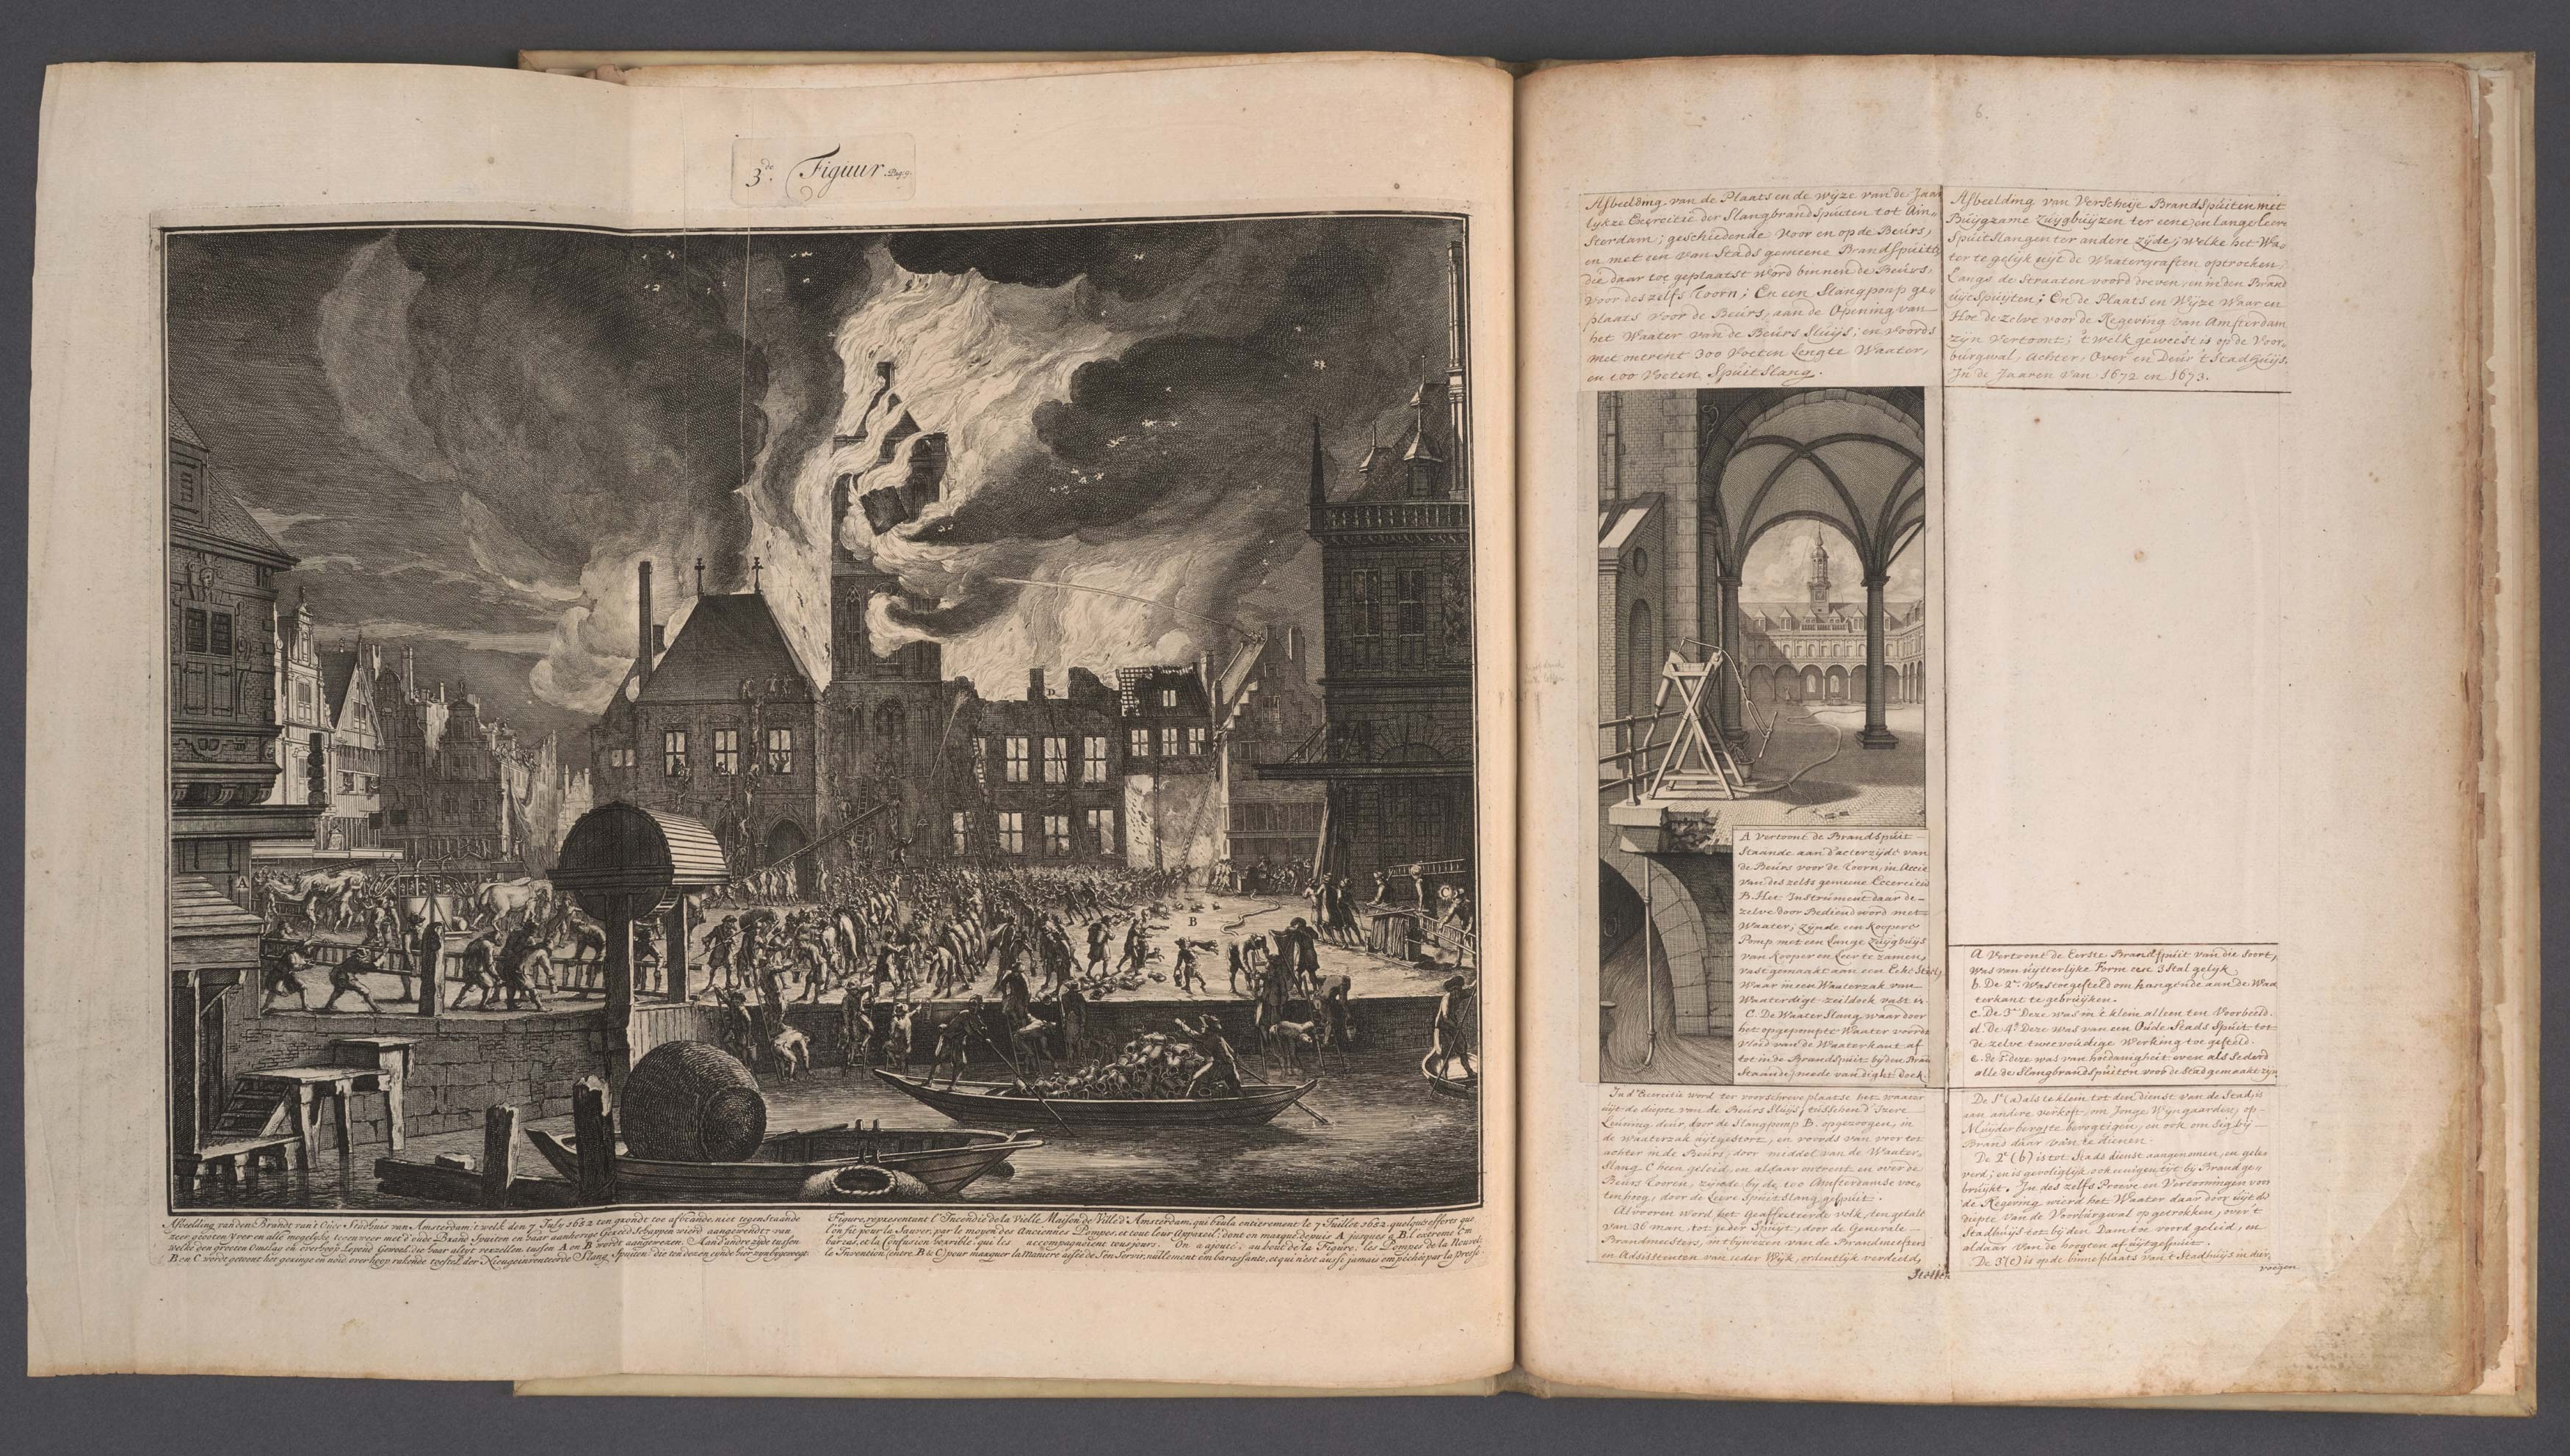 Jan van der Heyden (1637-1712), Continuation of the <em>Description of the recently invented and patented hose fire engine</em> , ca. 1695. Manuscript with mounted prints and one drawing, Amsterdam City Archives